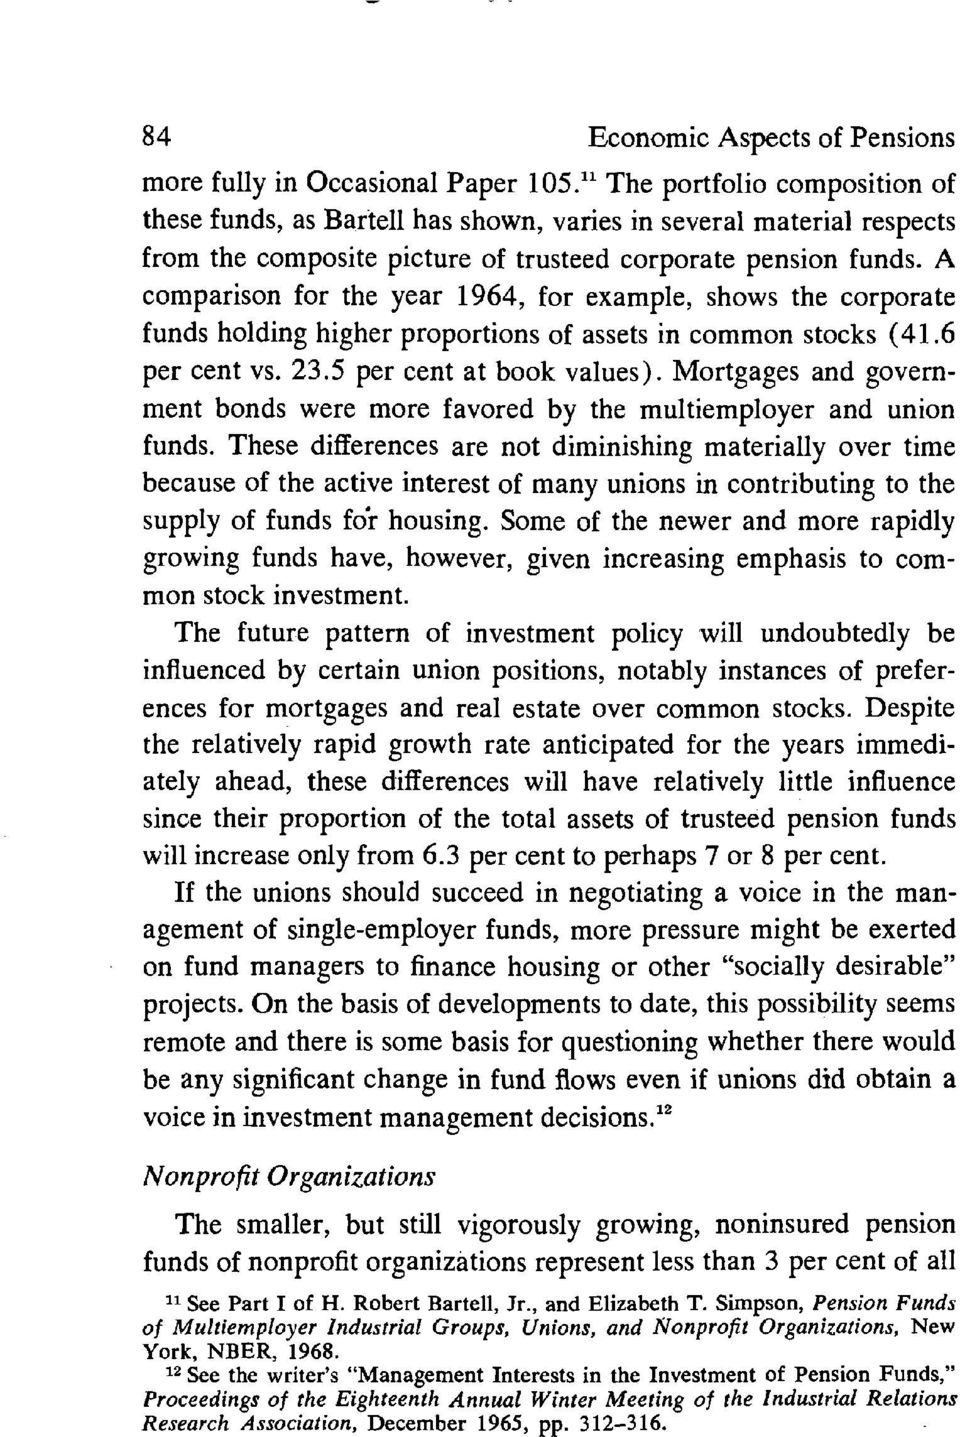 A comparison for the year 1964, for example, shows the corporate funds holding higher proportions of assets in common stocks (41.6 per cent vs. 23.5 per cent at book values).